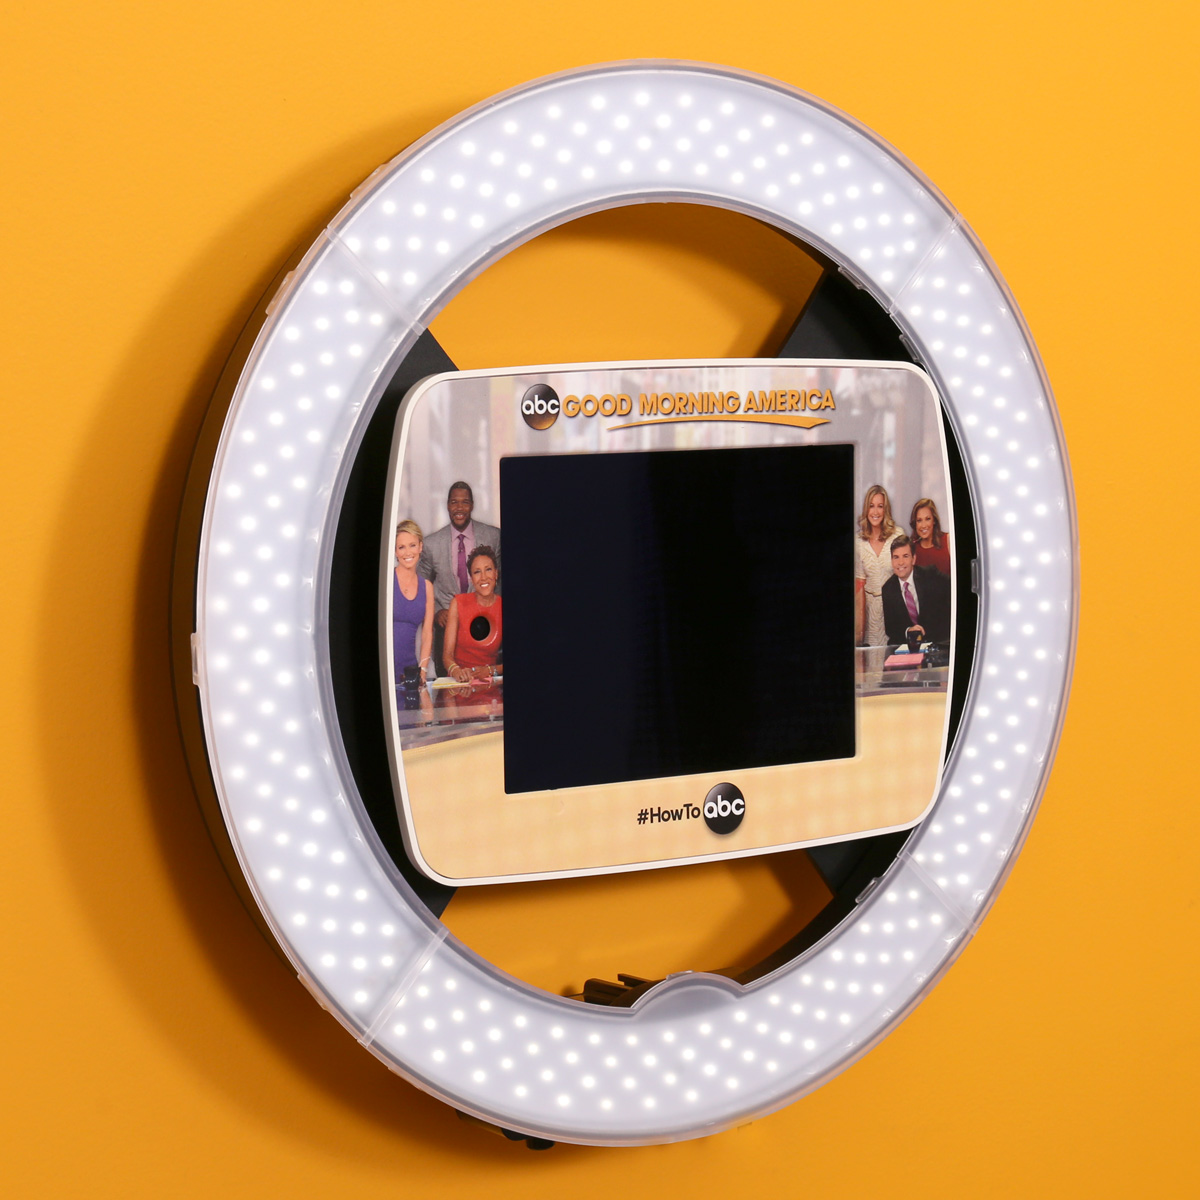 Wall Mounted Photo Booth